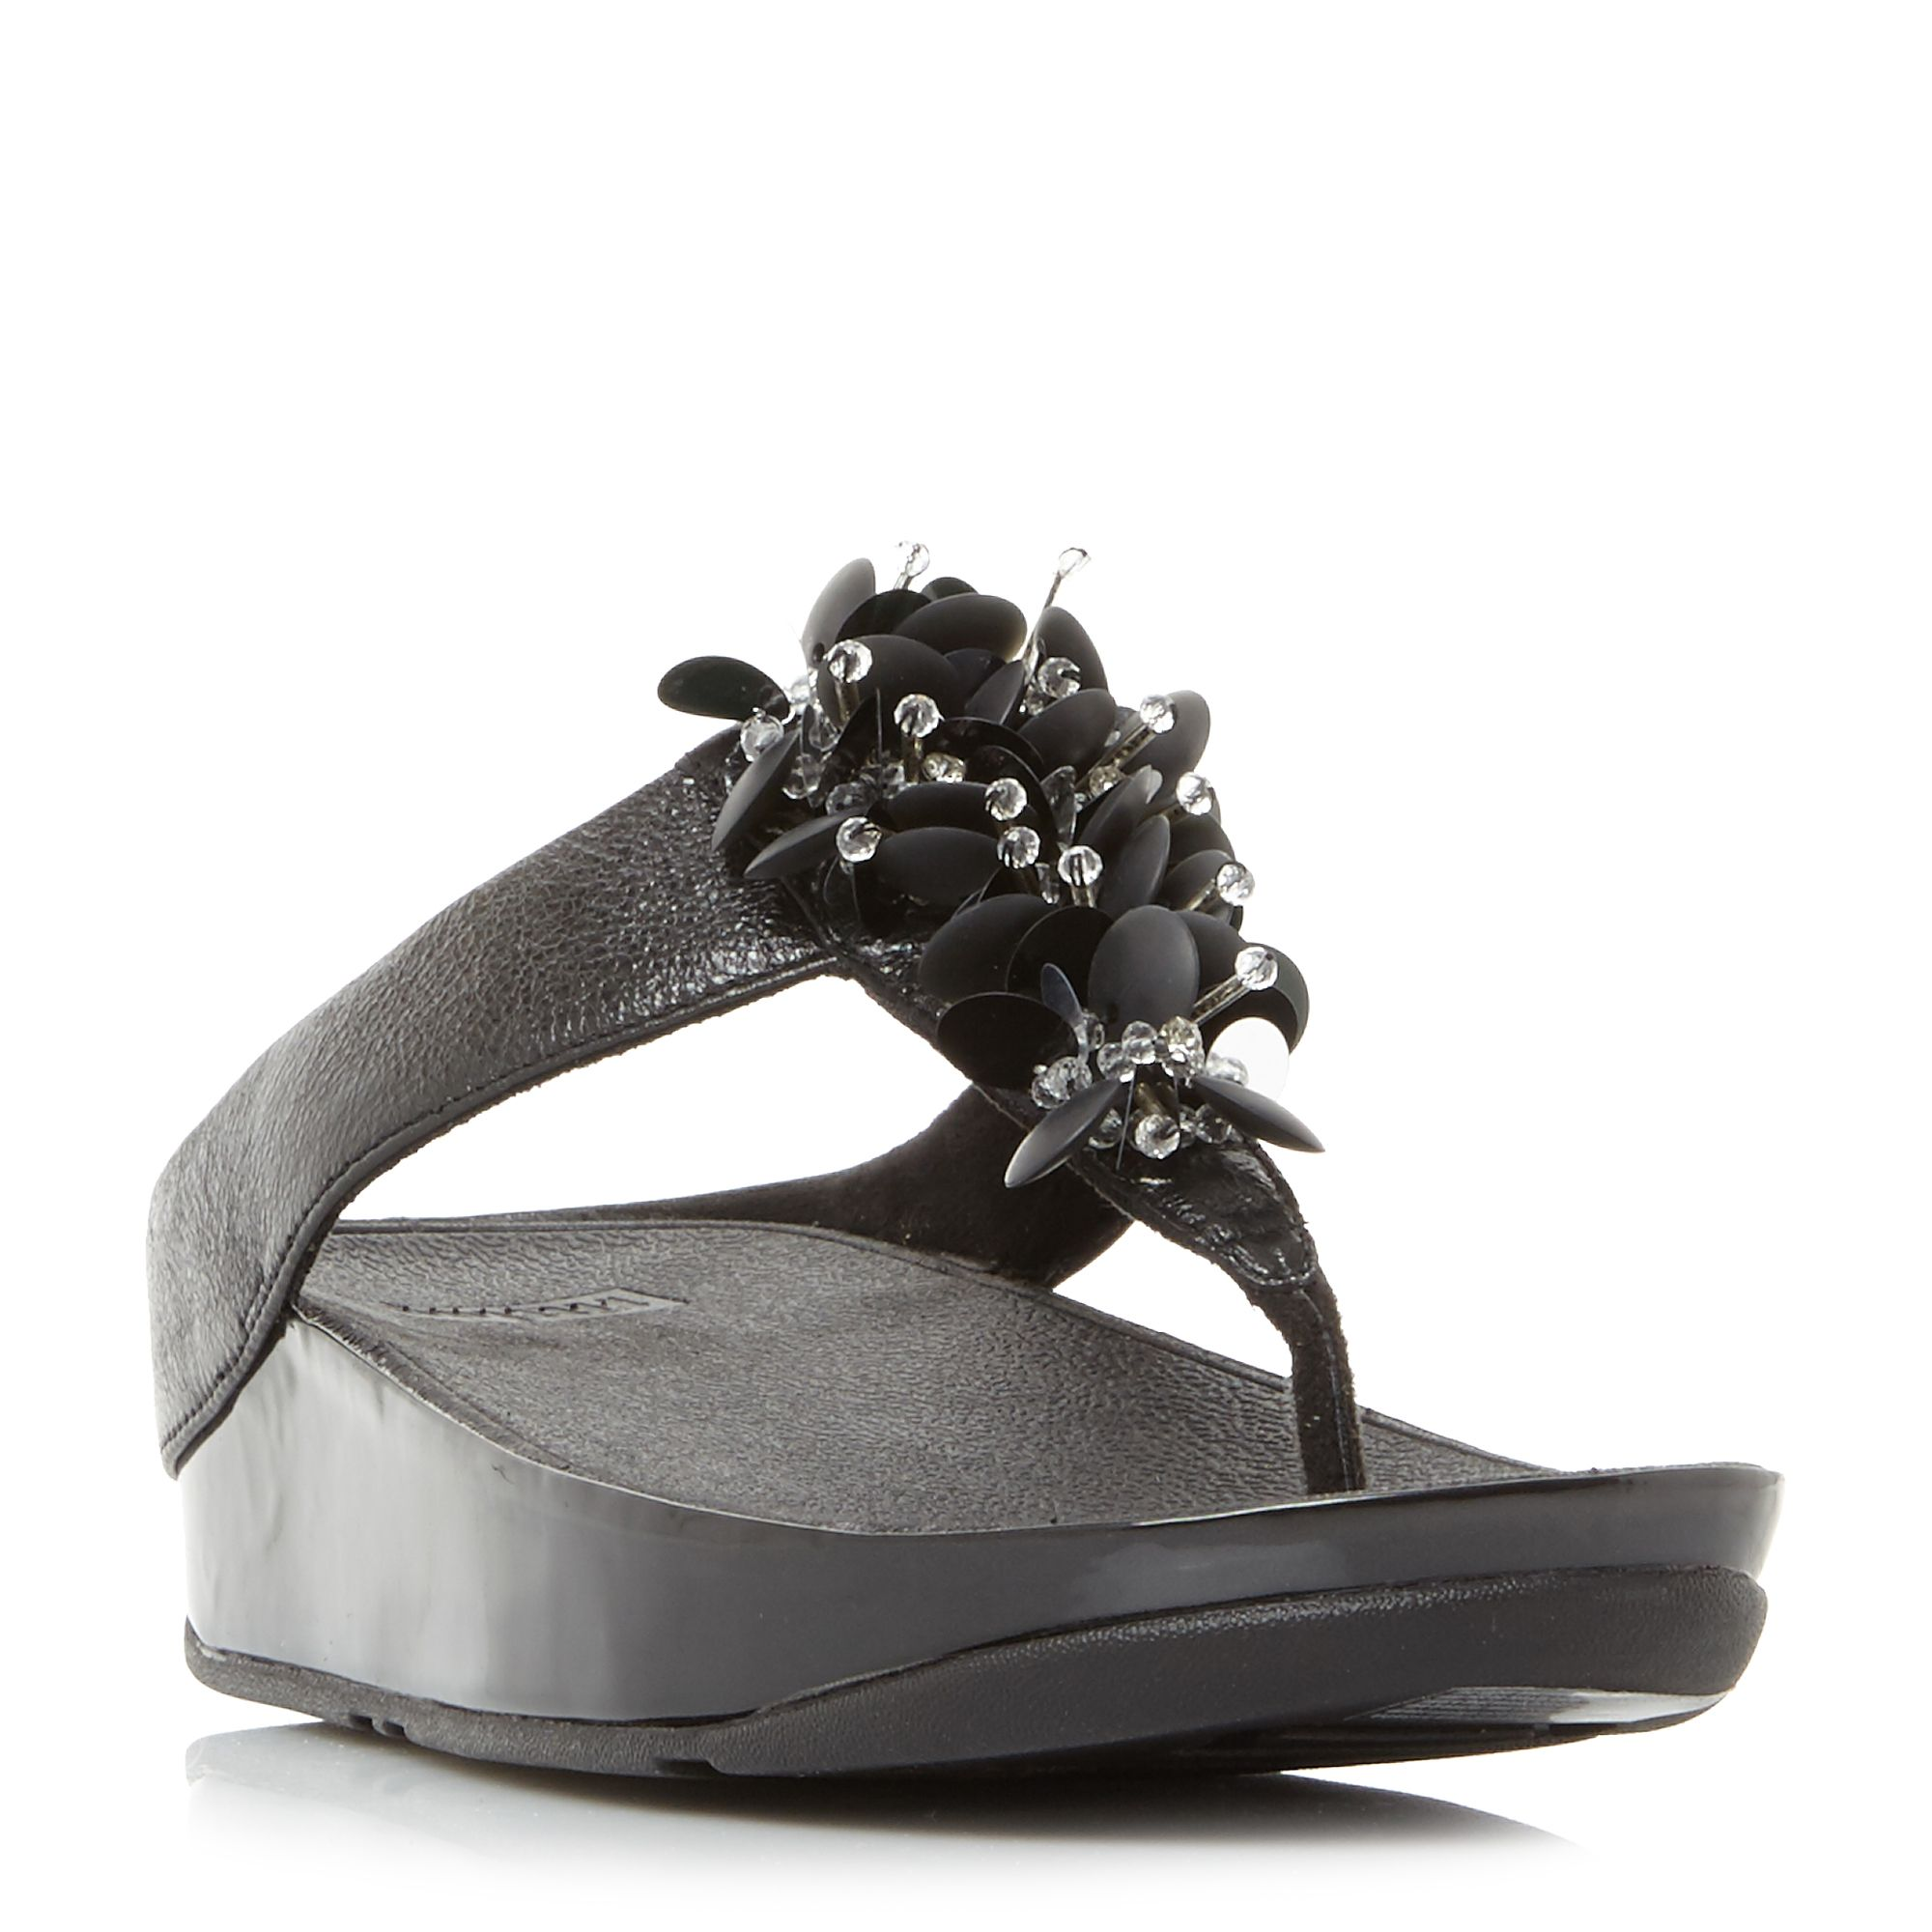 FitFlop Boogaloo Embellished Toepost Sandals, Black